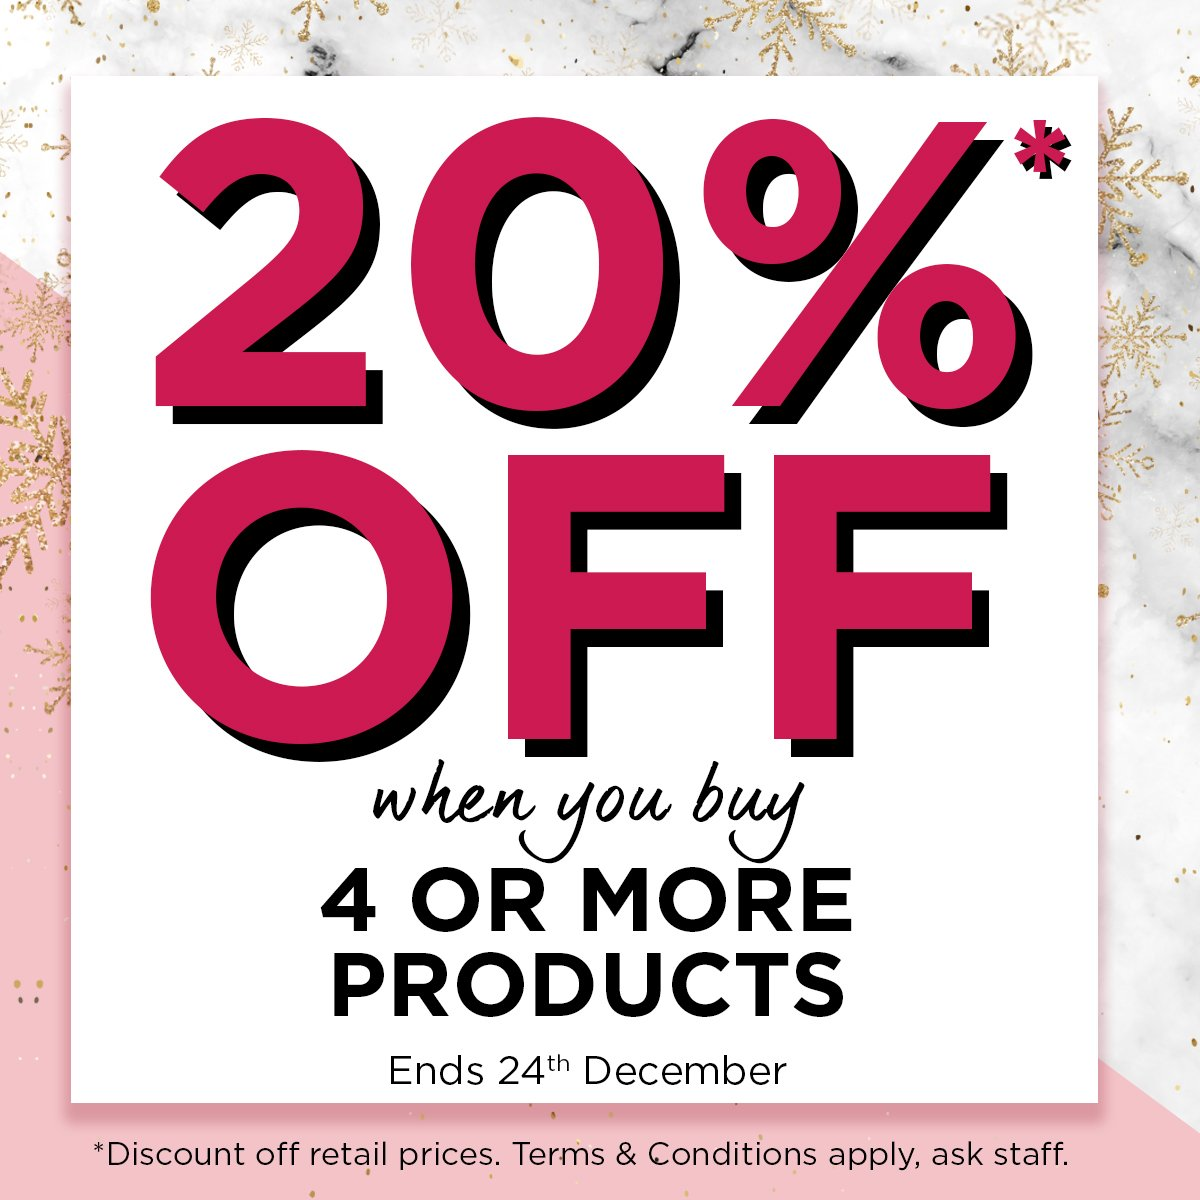 🎁 🎄 ❄️  Brave the cold and head in store- 'cause we're offering you a hot 20% OFF when you buy 4 or more items until Christmas eve!!! Tag someone who needs to pop in ASAP 👀 🎁 🎄 ❄️*t's + c's apply* https://t.co/ipP30FJ77c